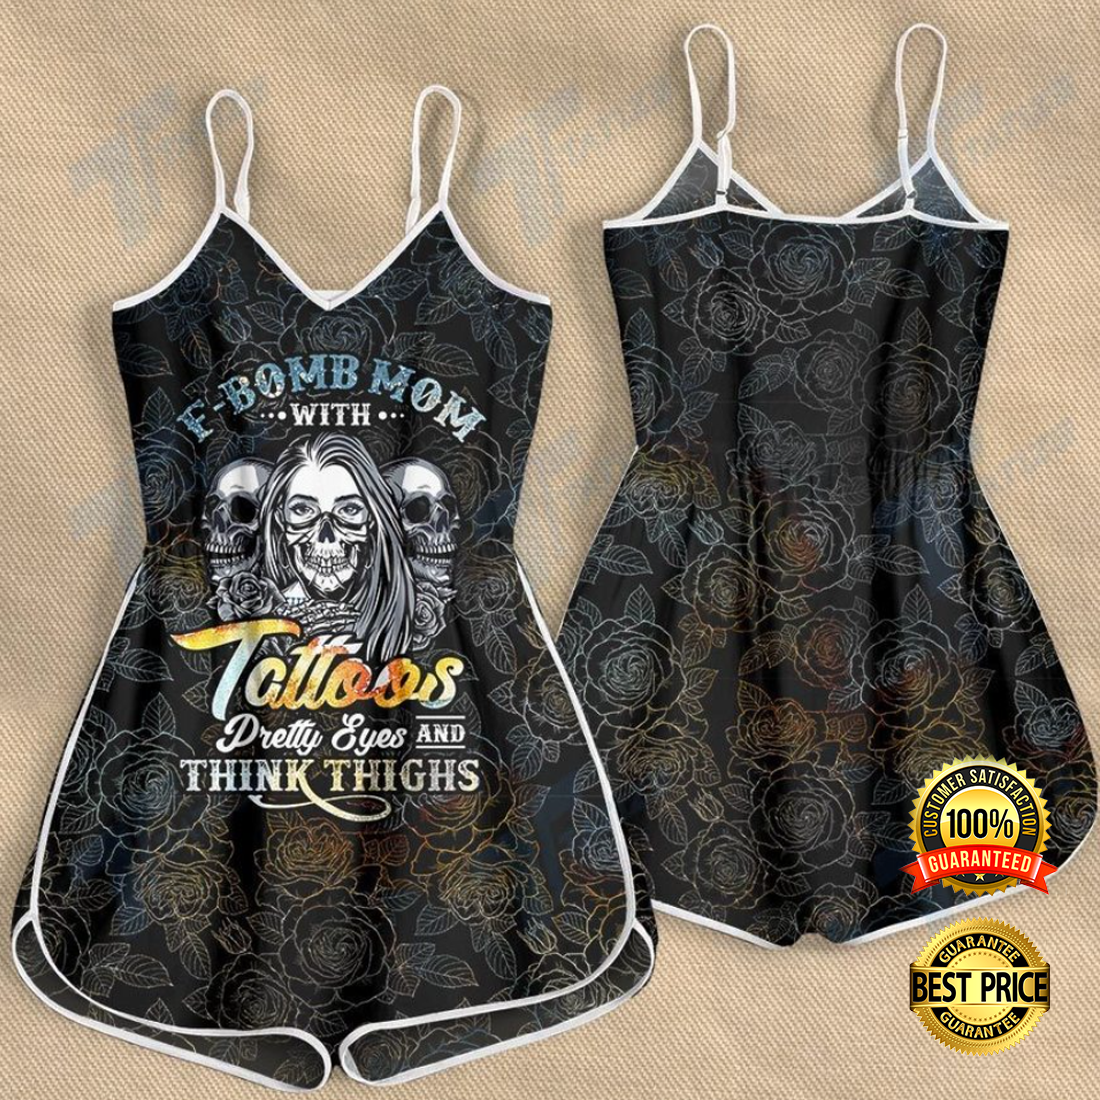 F bomb mom with tattoos pretty eyes and thick thighs romper 4 1